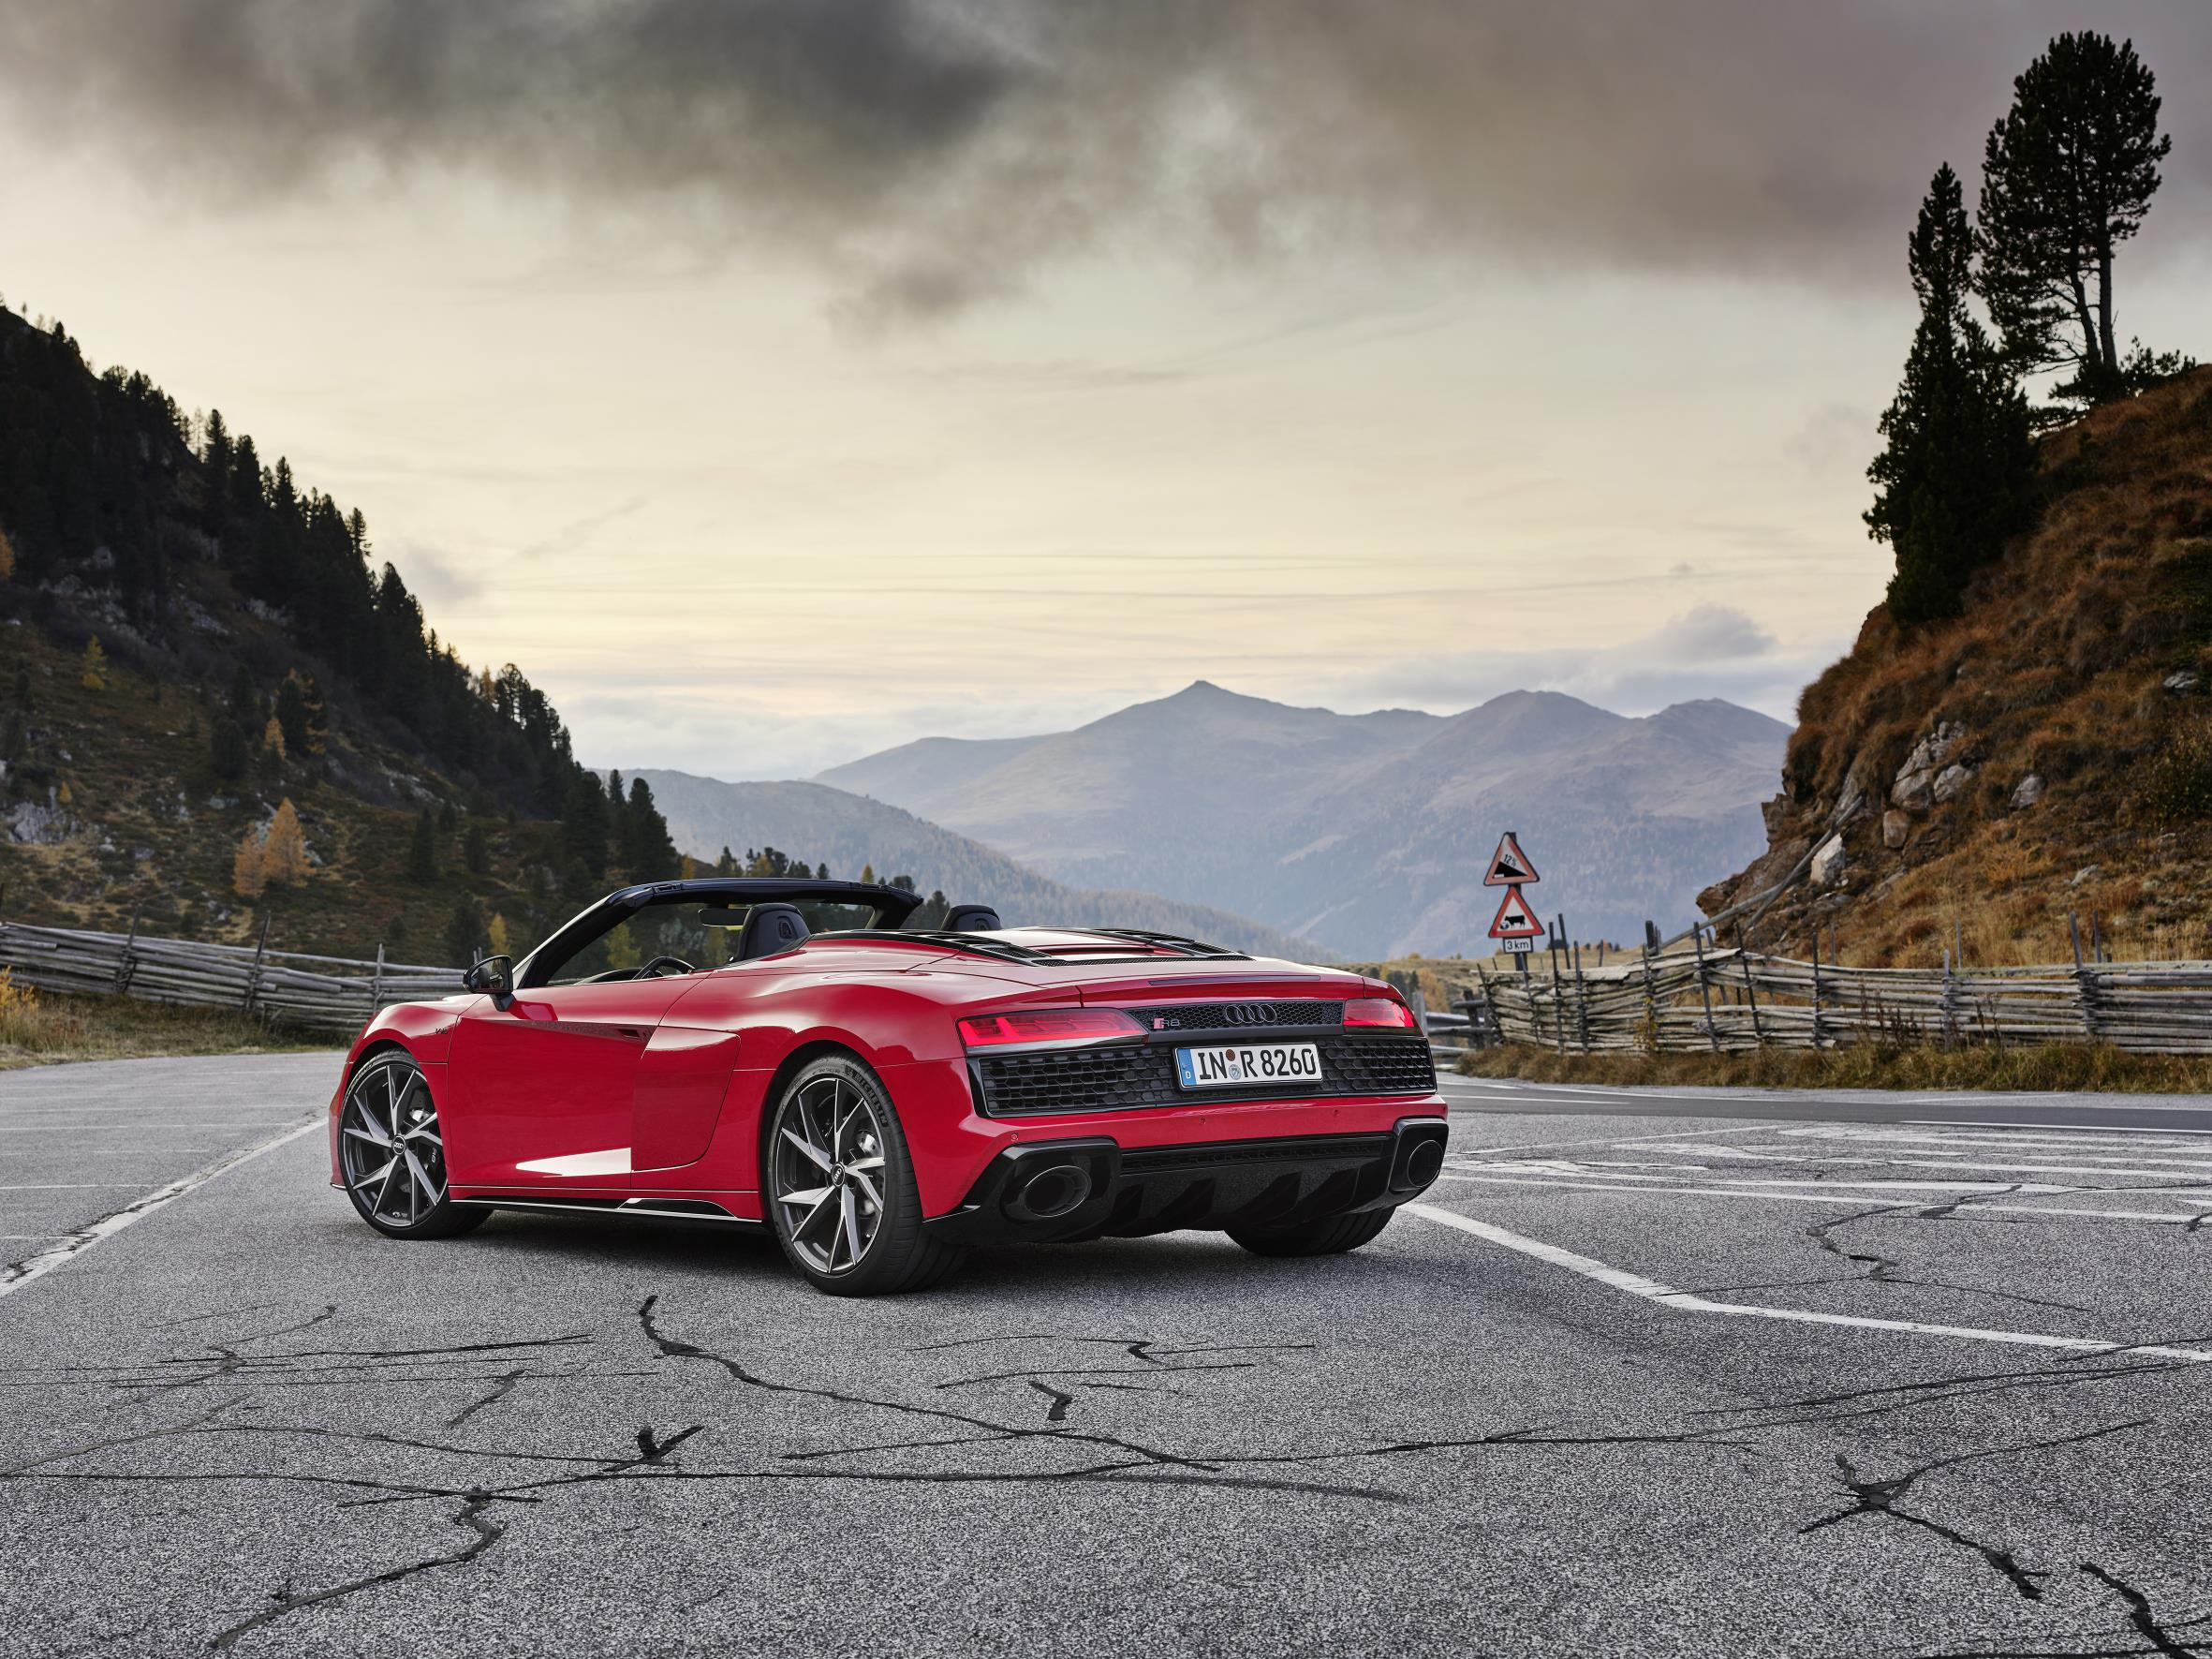 2020 audi r8 rwd coupe and spider revealed - gtspirit